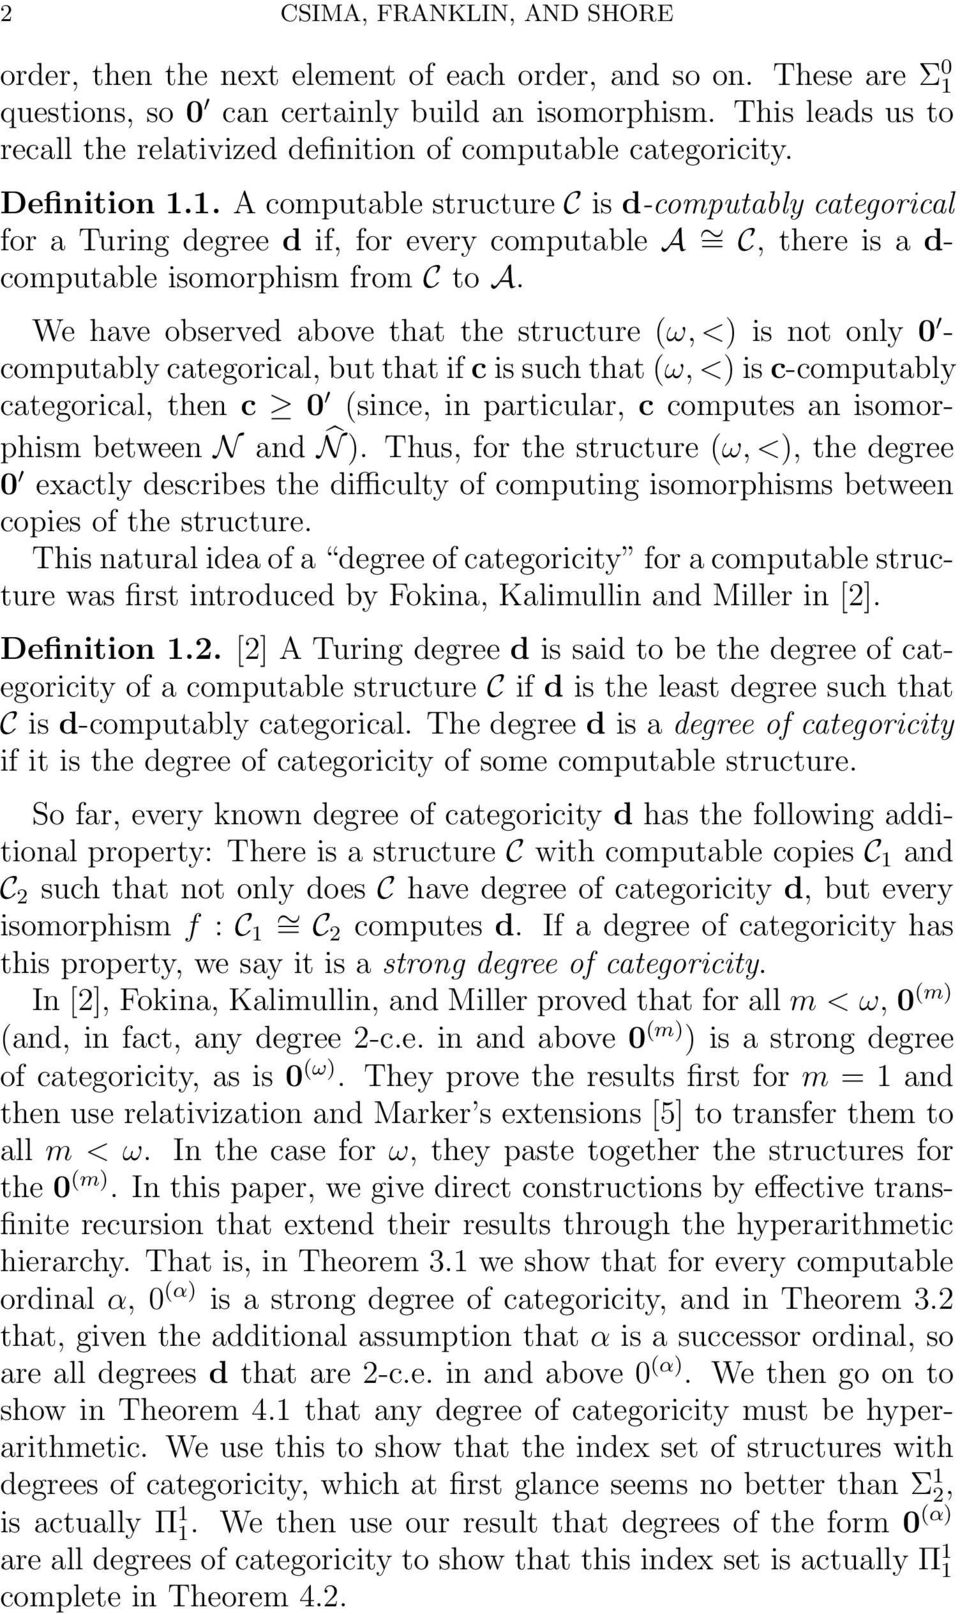 1. A computable structure C is d-computably categorical for a Turing degree d if, for every computable A = C, there is a d- computable isomorphism from C to A.